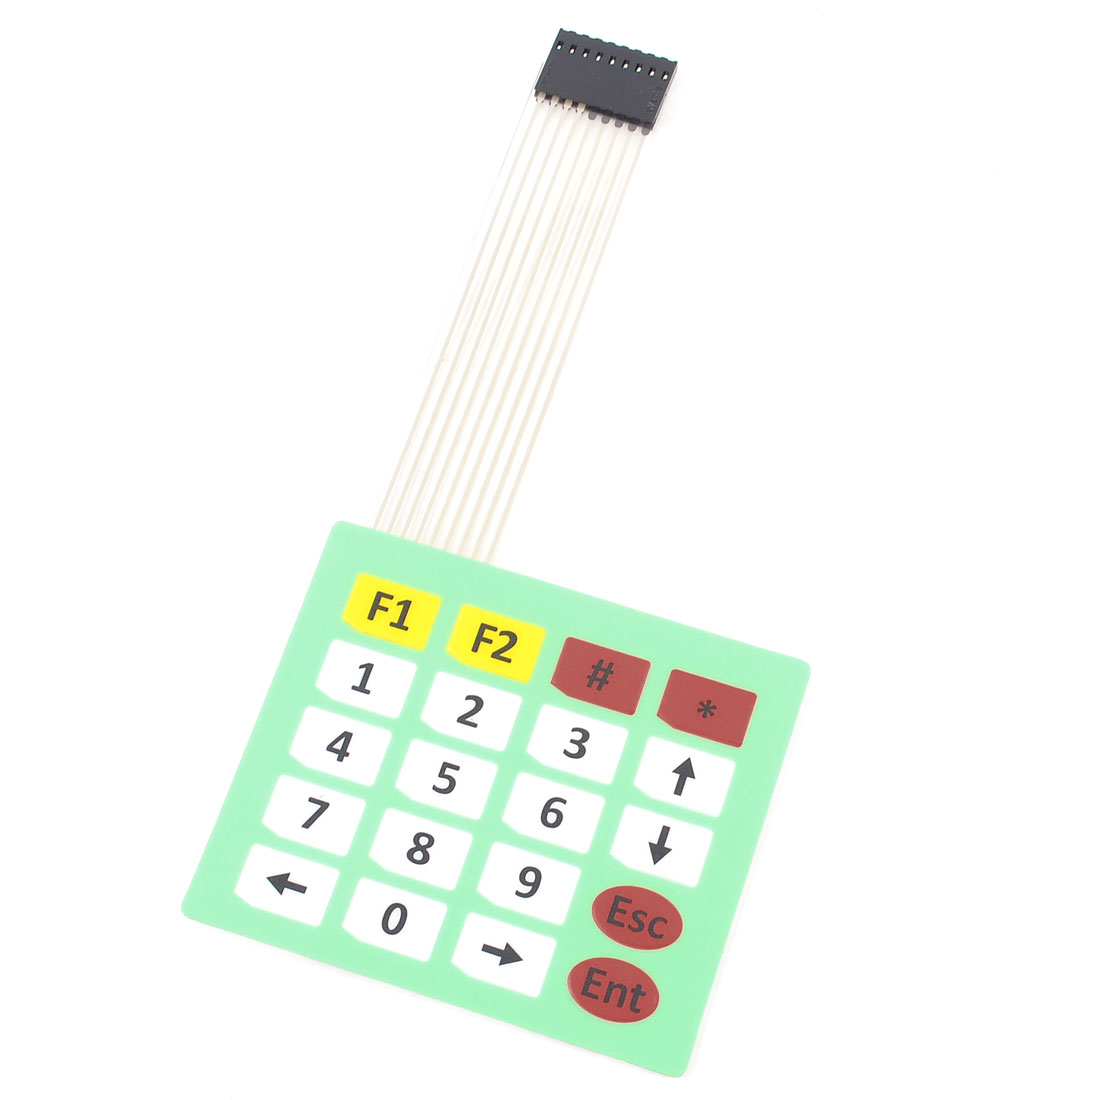 Array 4x5 20 Keys 8Pins Flex Flat Ribbon Cable Extended Numeric Membrane Switch Keyboard